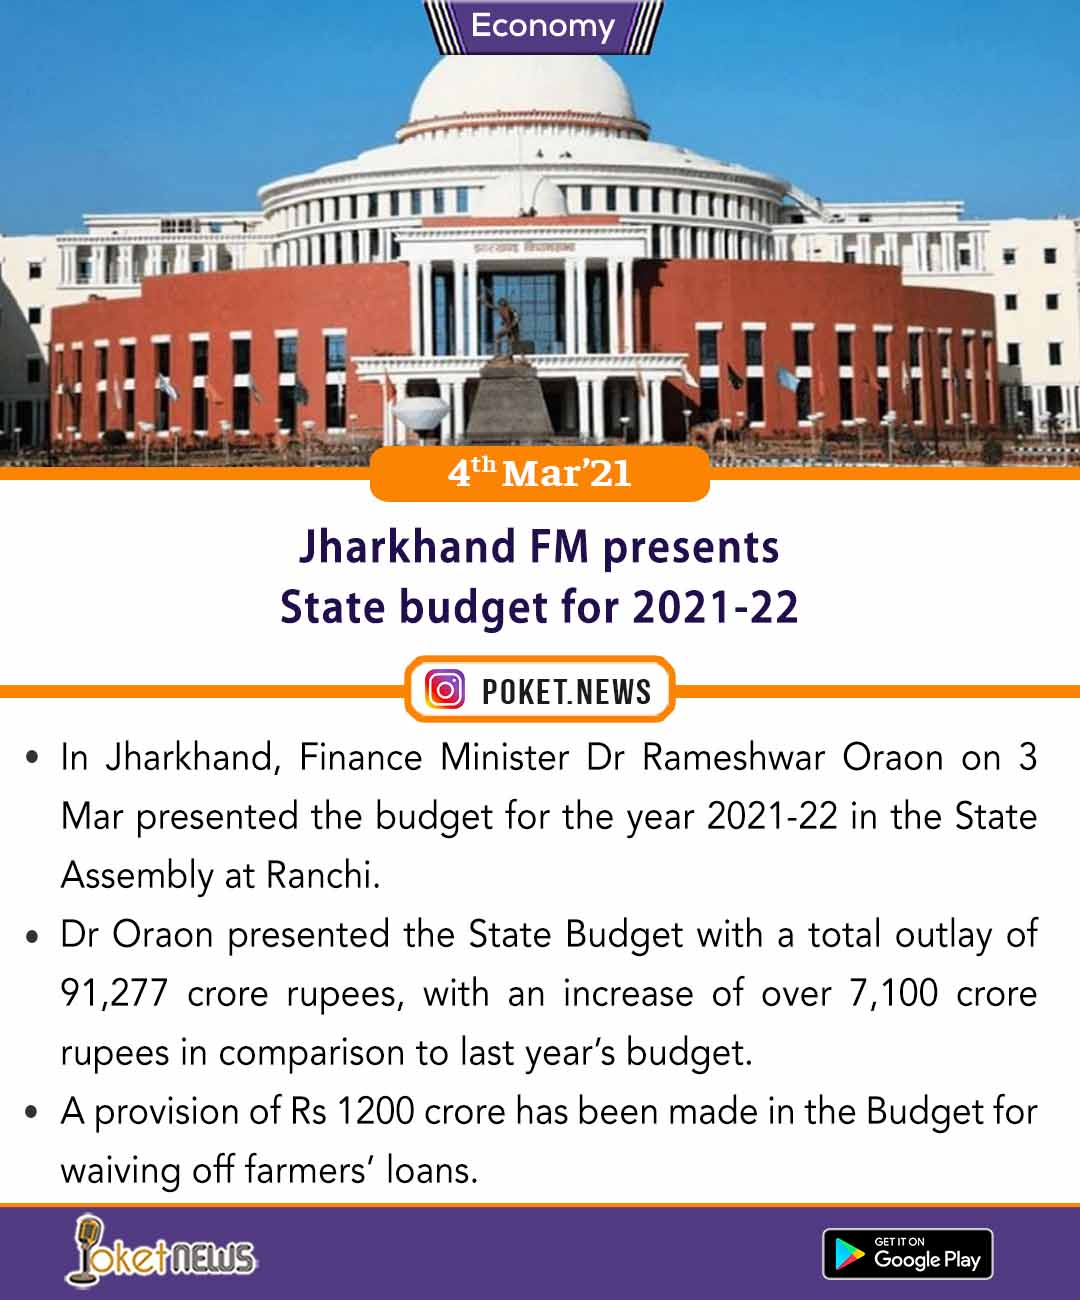 Jharkhand FM presents State budget for 2021-22